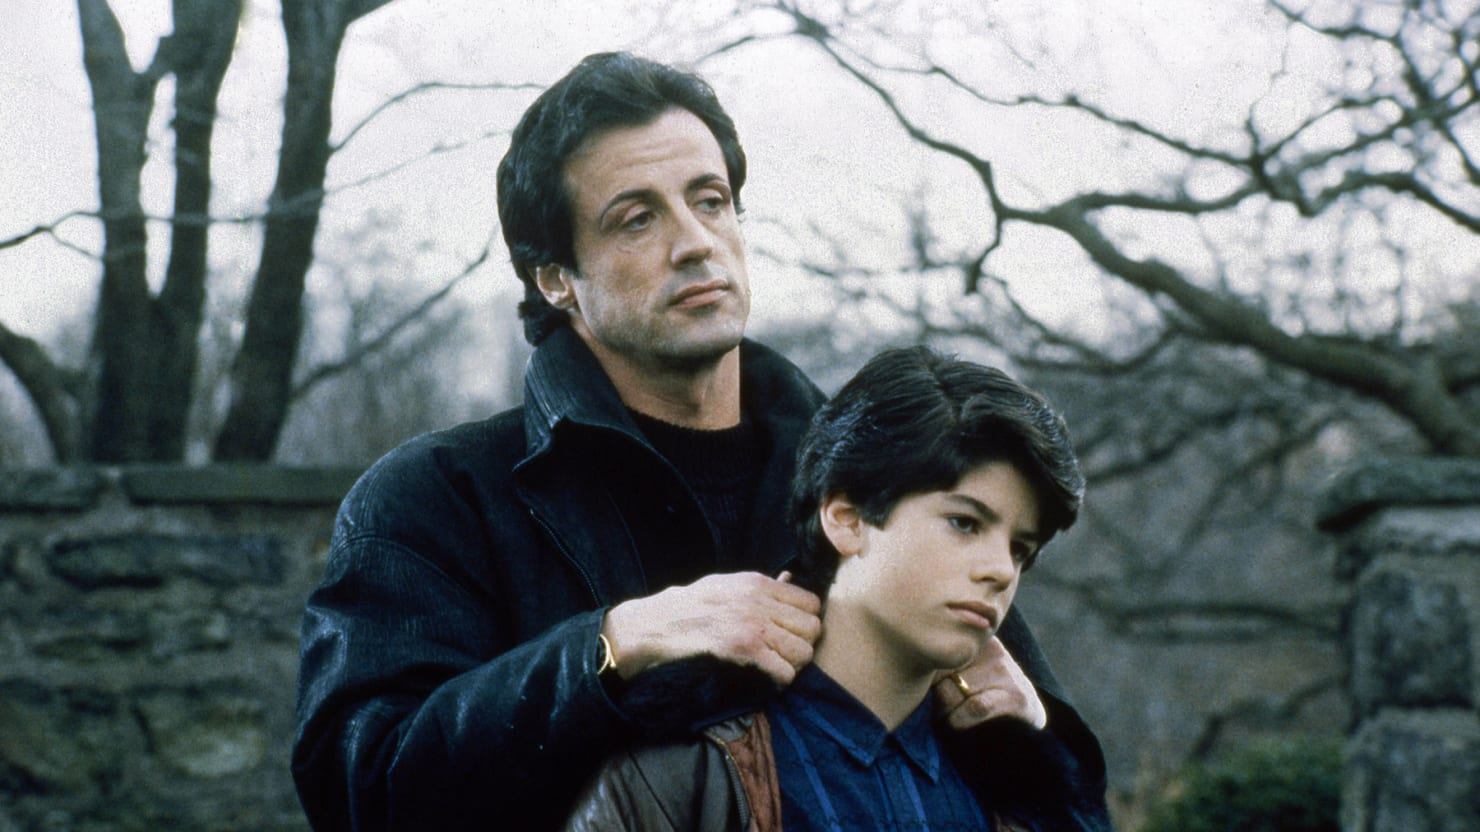 Seargeoh stallone and sylvester stallone